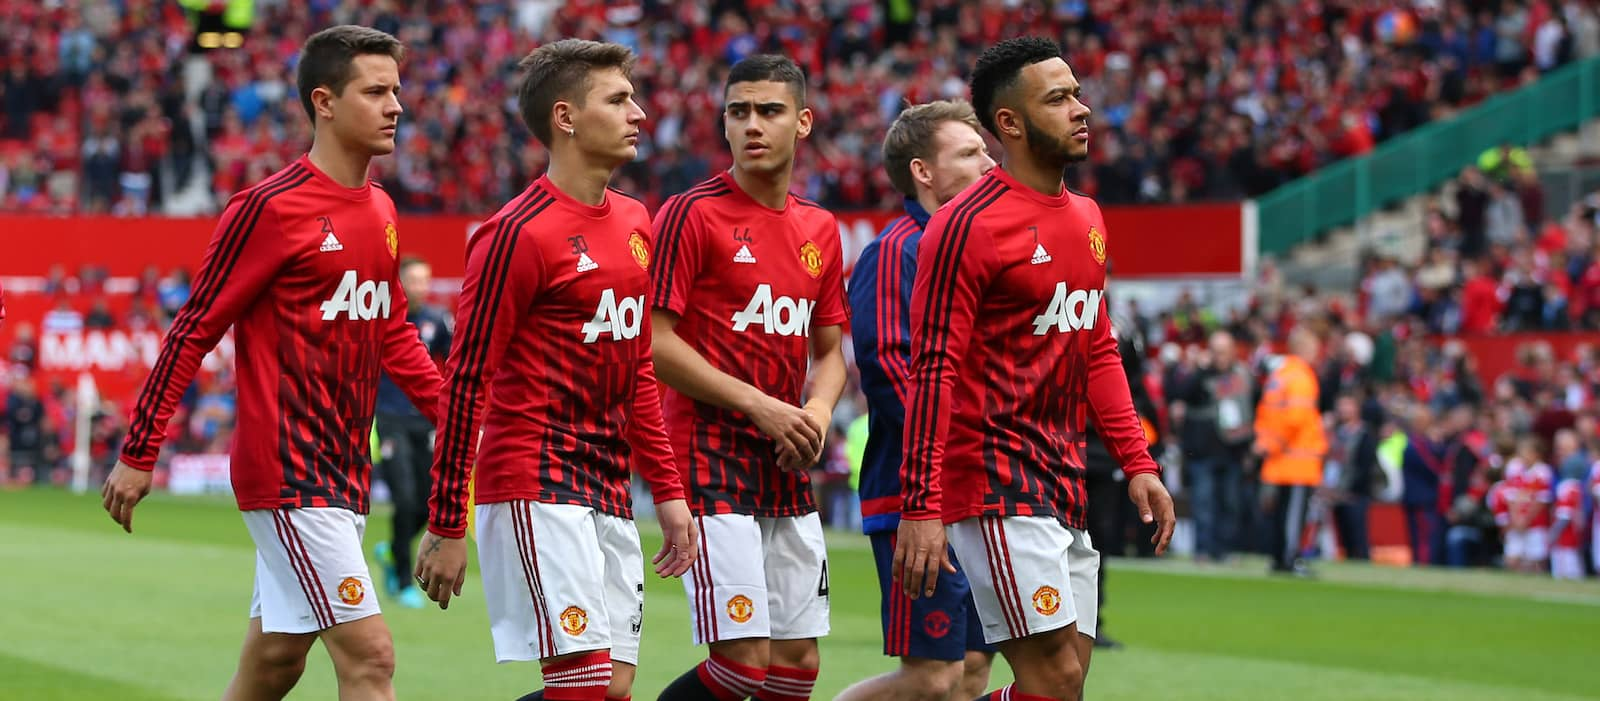 Memphis Depay trains with Manchester United as transfer questions loom large